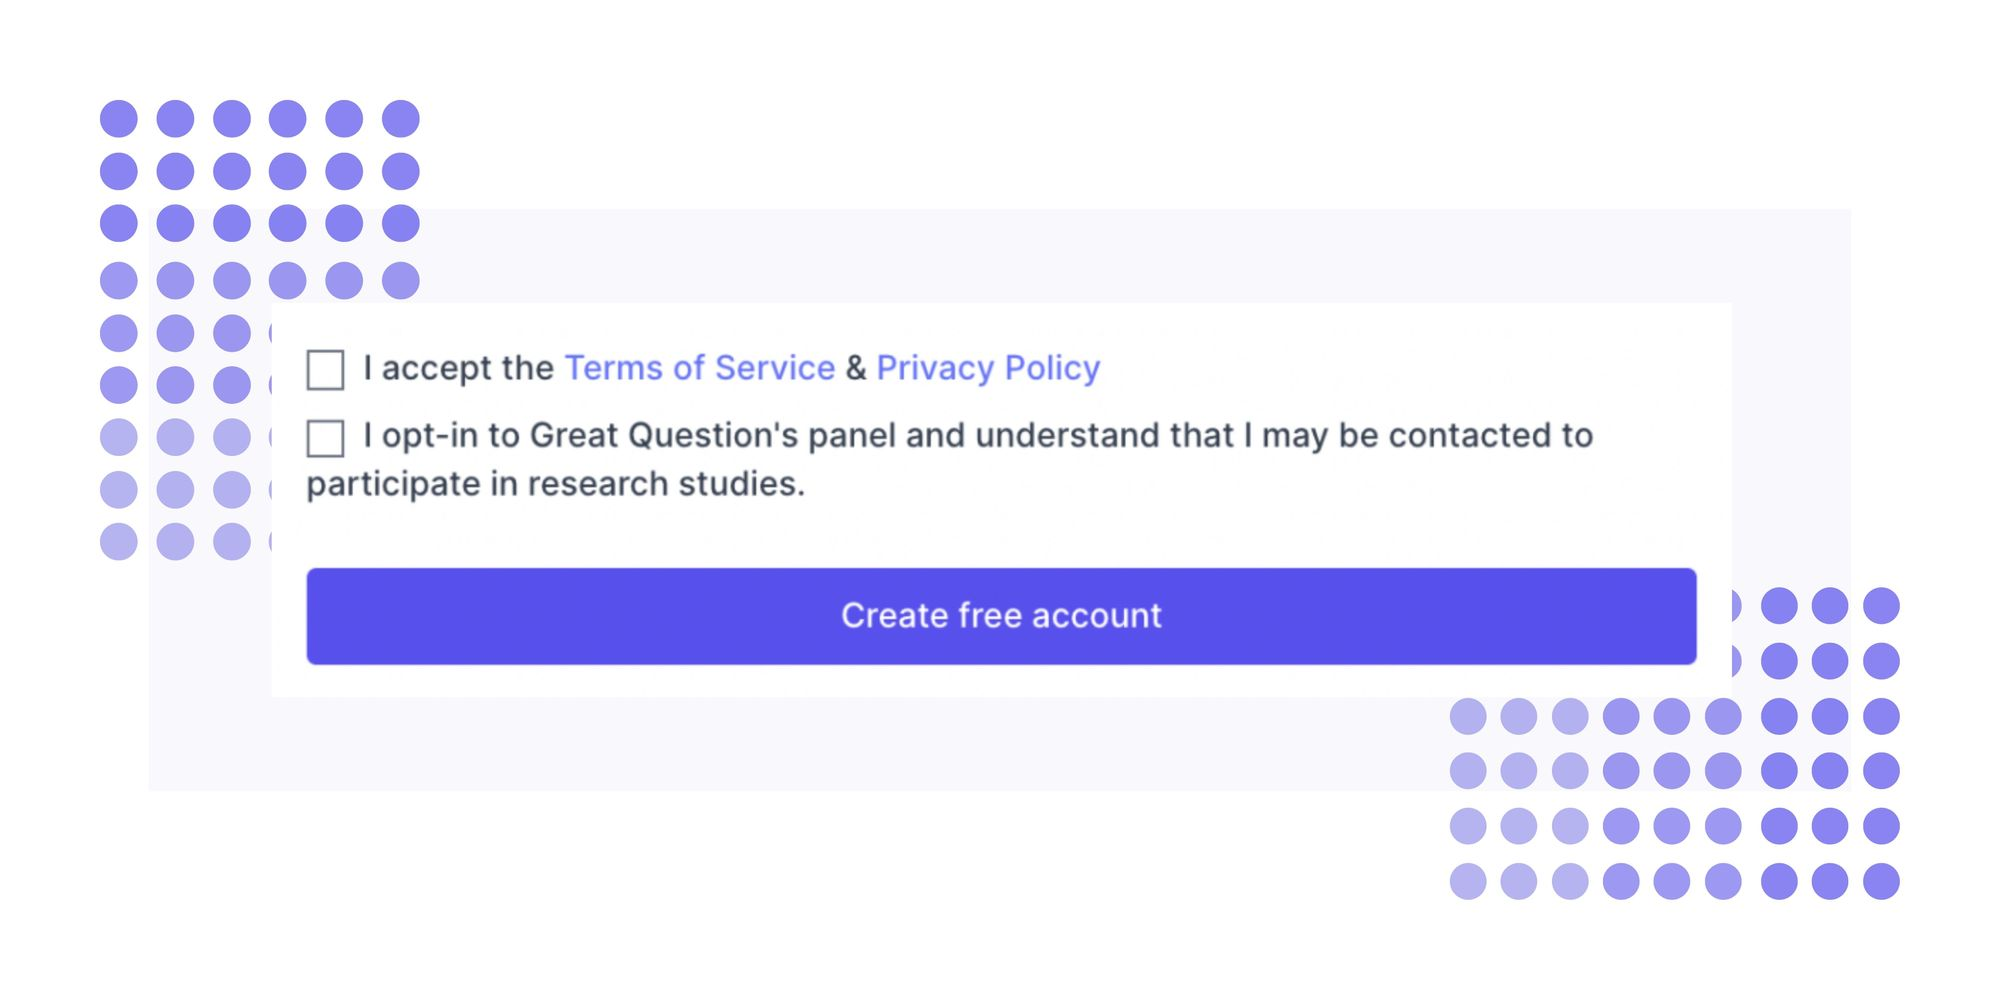 Great Question sign up page with research panel opt-in option